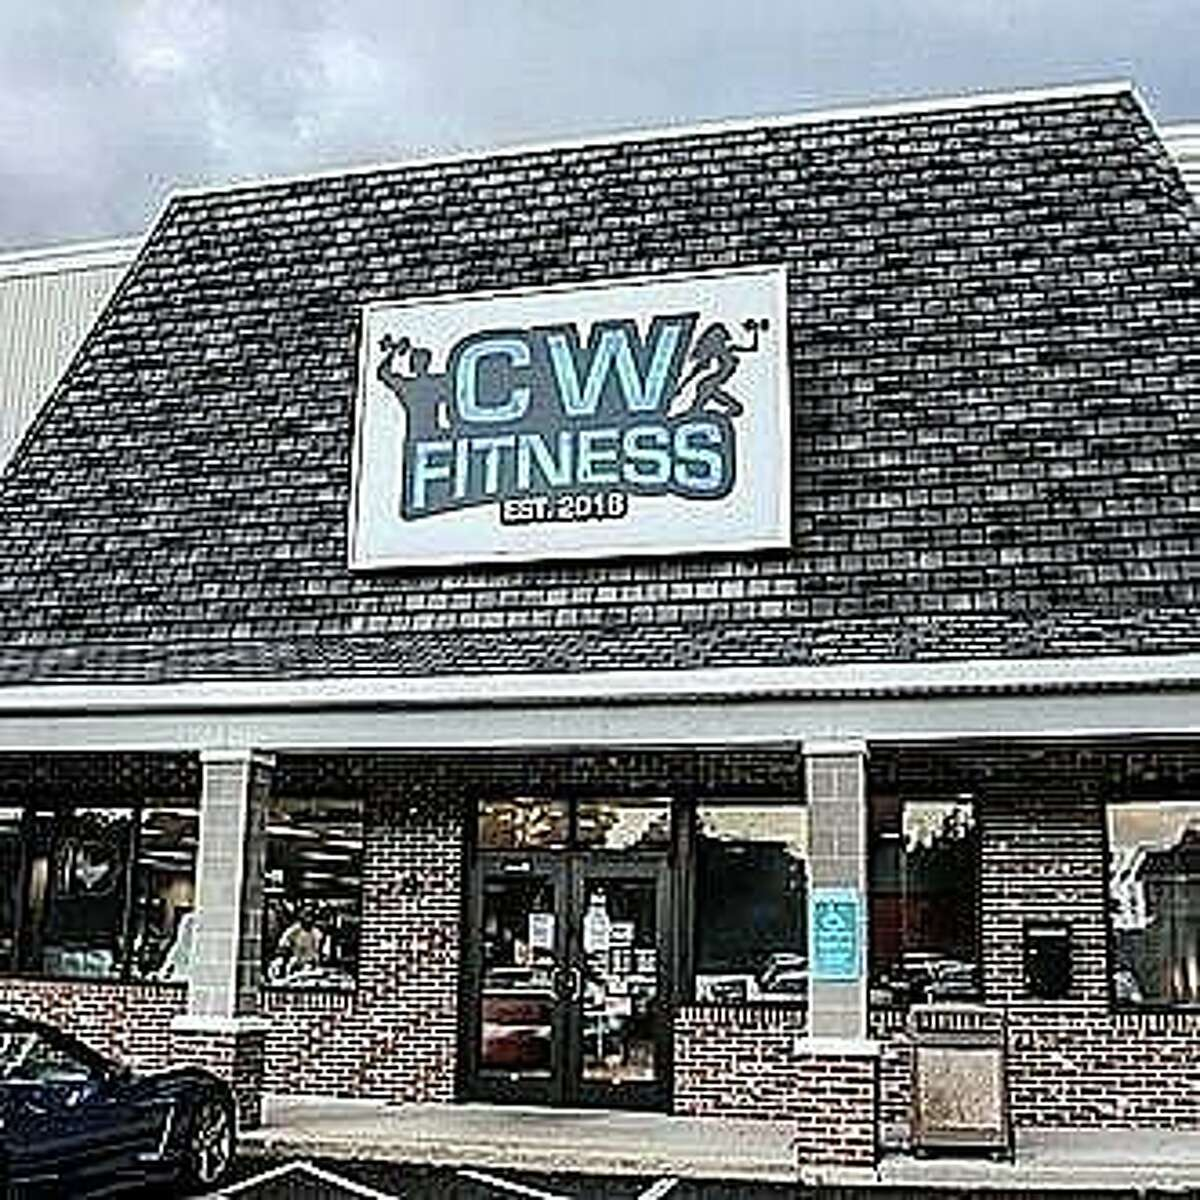 CW Fitness, a Seymour gym in business for four years, closed its doors on Sunday. Sept. 27, 2020. The gym located in the Klarides Village Shopping Center on Bank Street, is the latest business to close because of the coronavirus pandemic.